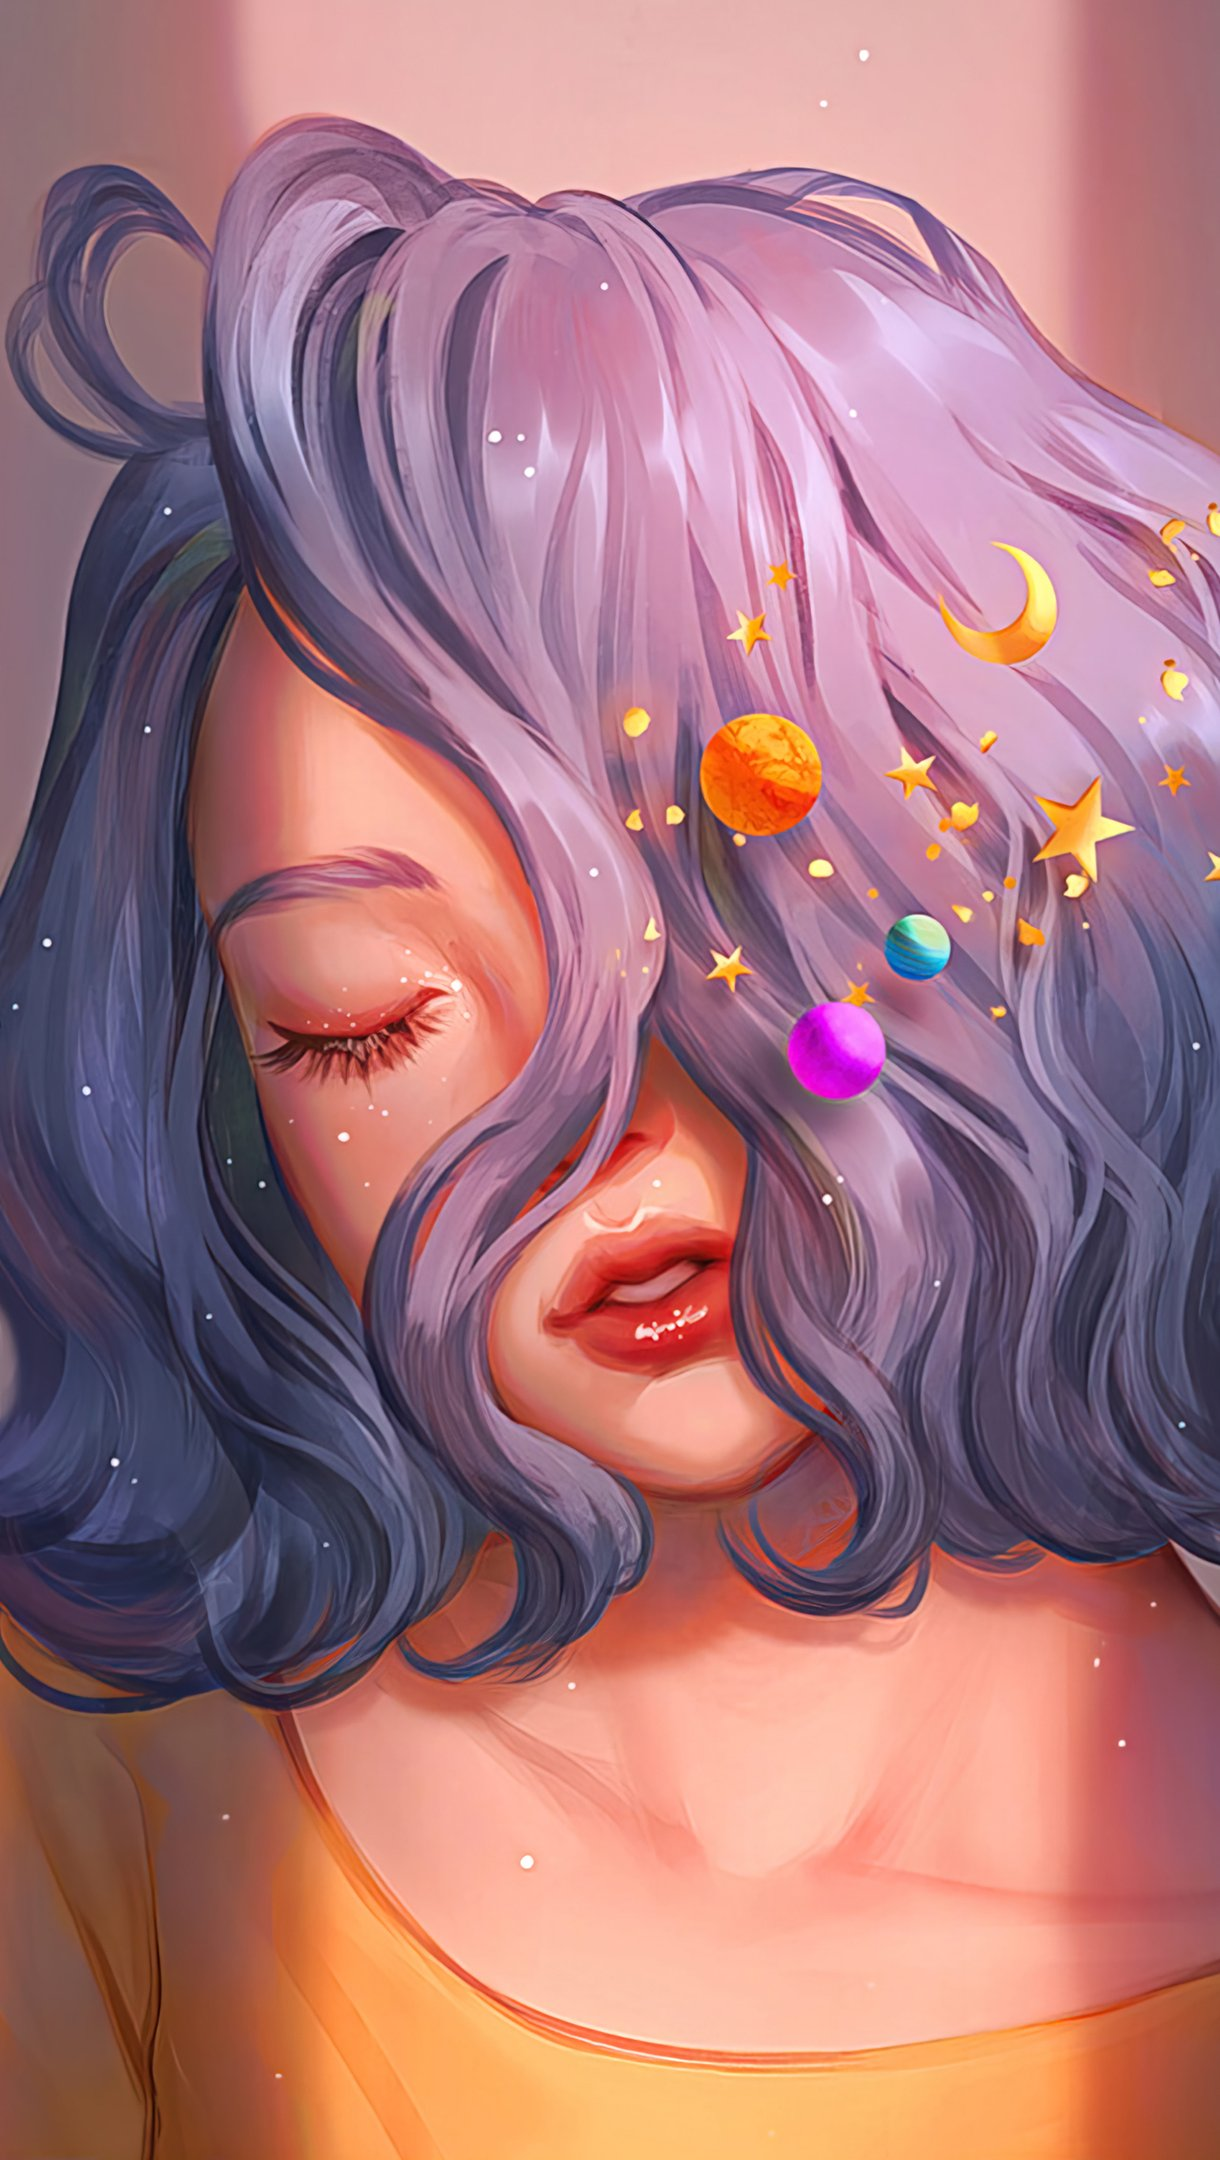 Wallpaper Girl with planets on blue hair Digital Art Vertical